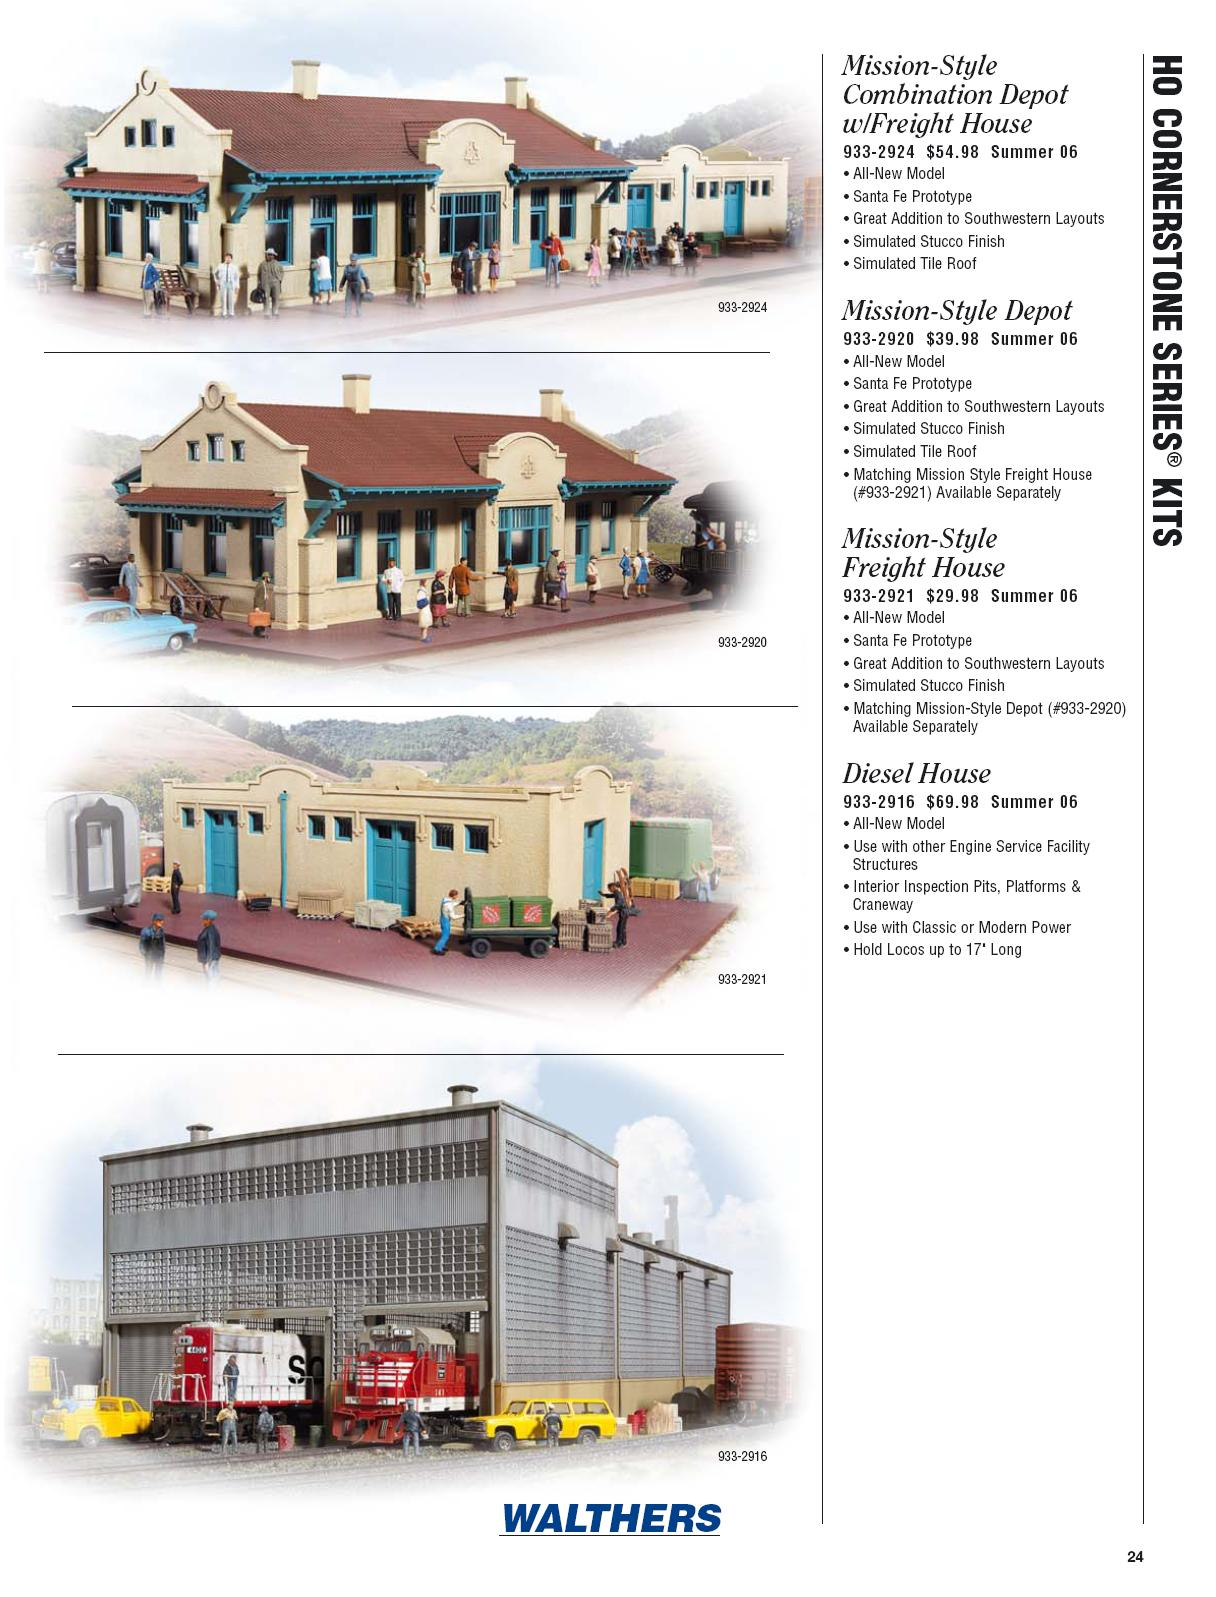 Walthers 2006 Cataloge Buildings page 4